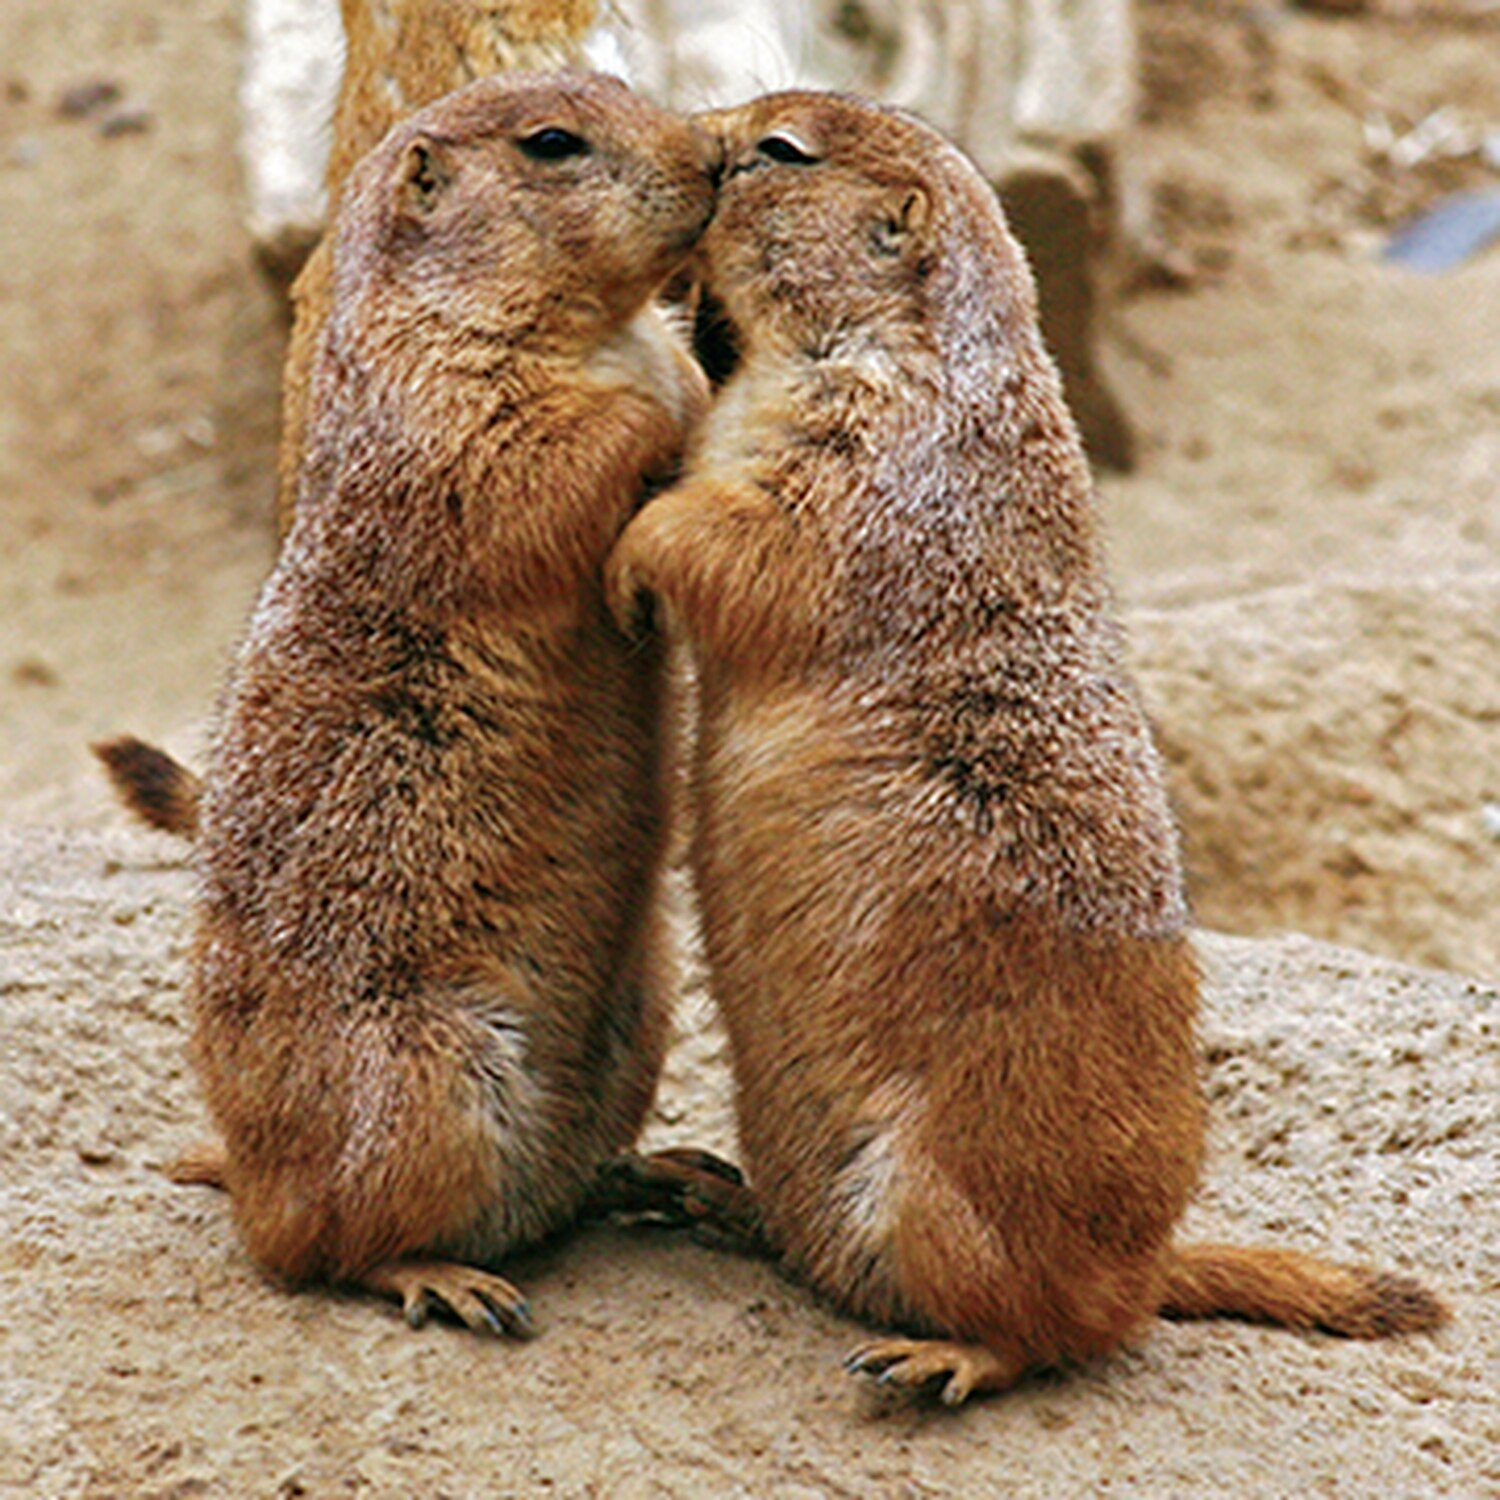 Just like us, prairie dogs kiss.